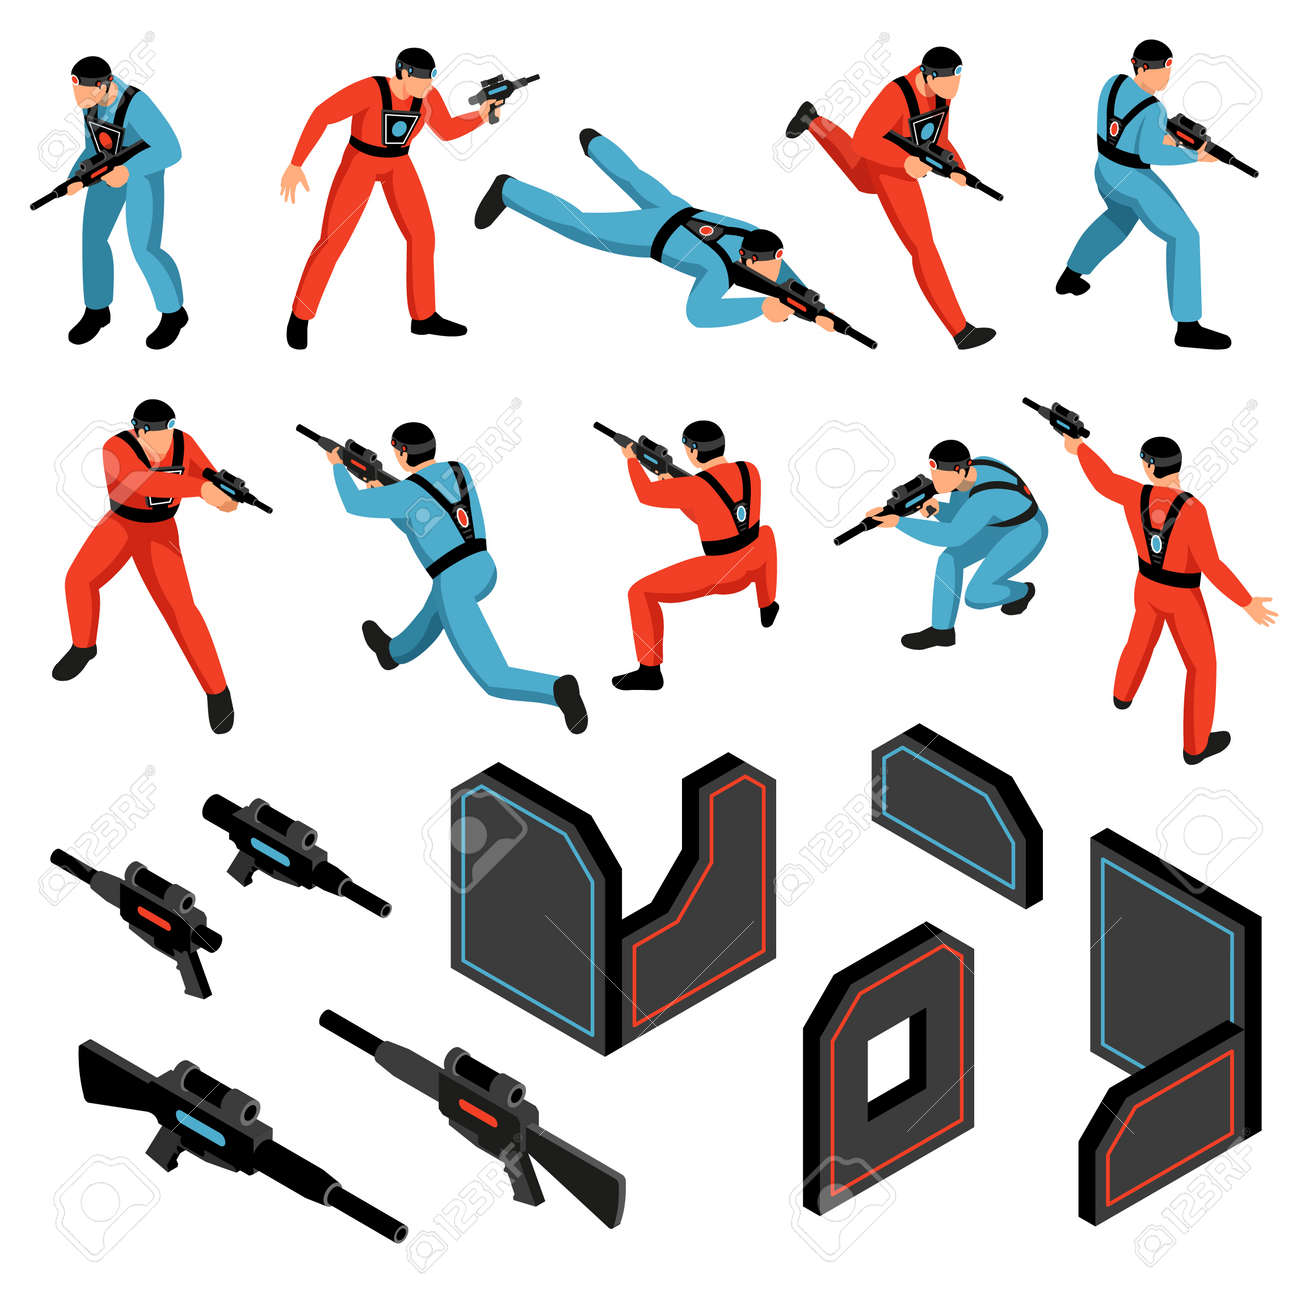 Laser tag game ammunition gear infrared sensitive targets vests guns players isometric icons set isolated vector illustration - 166304273